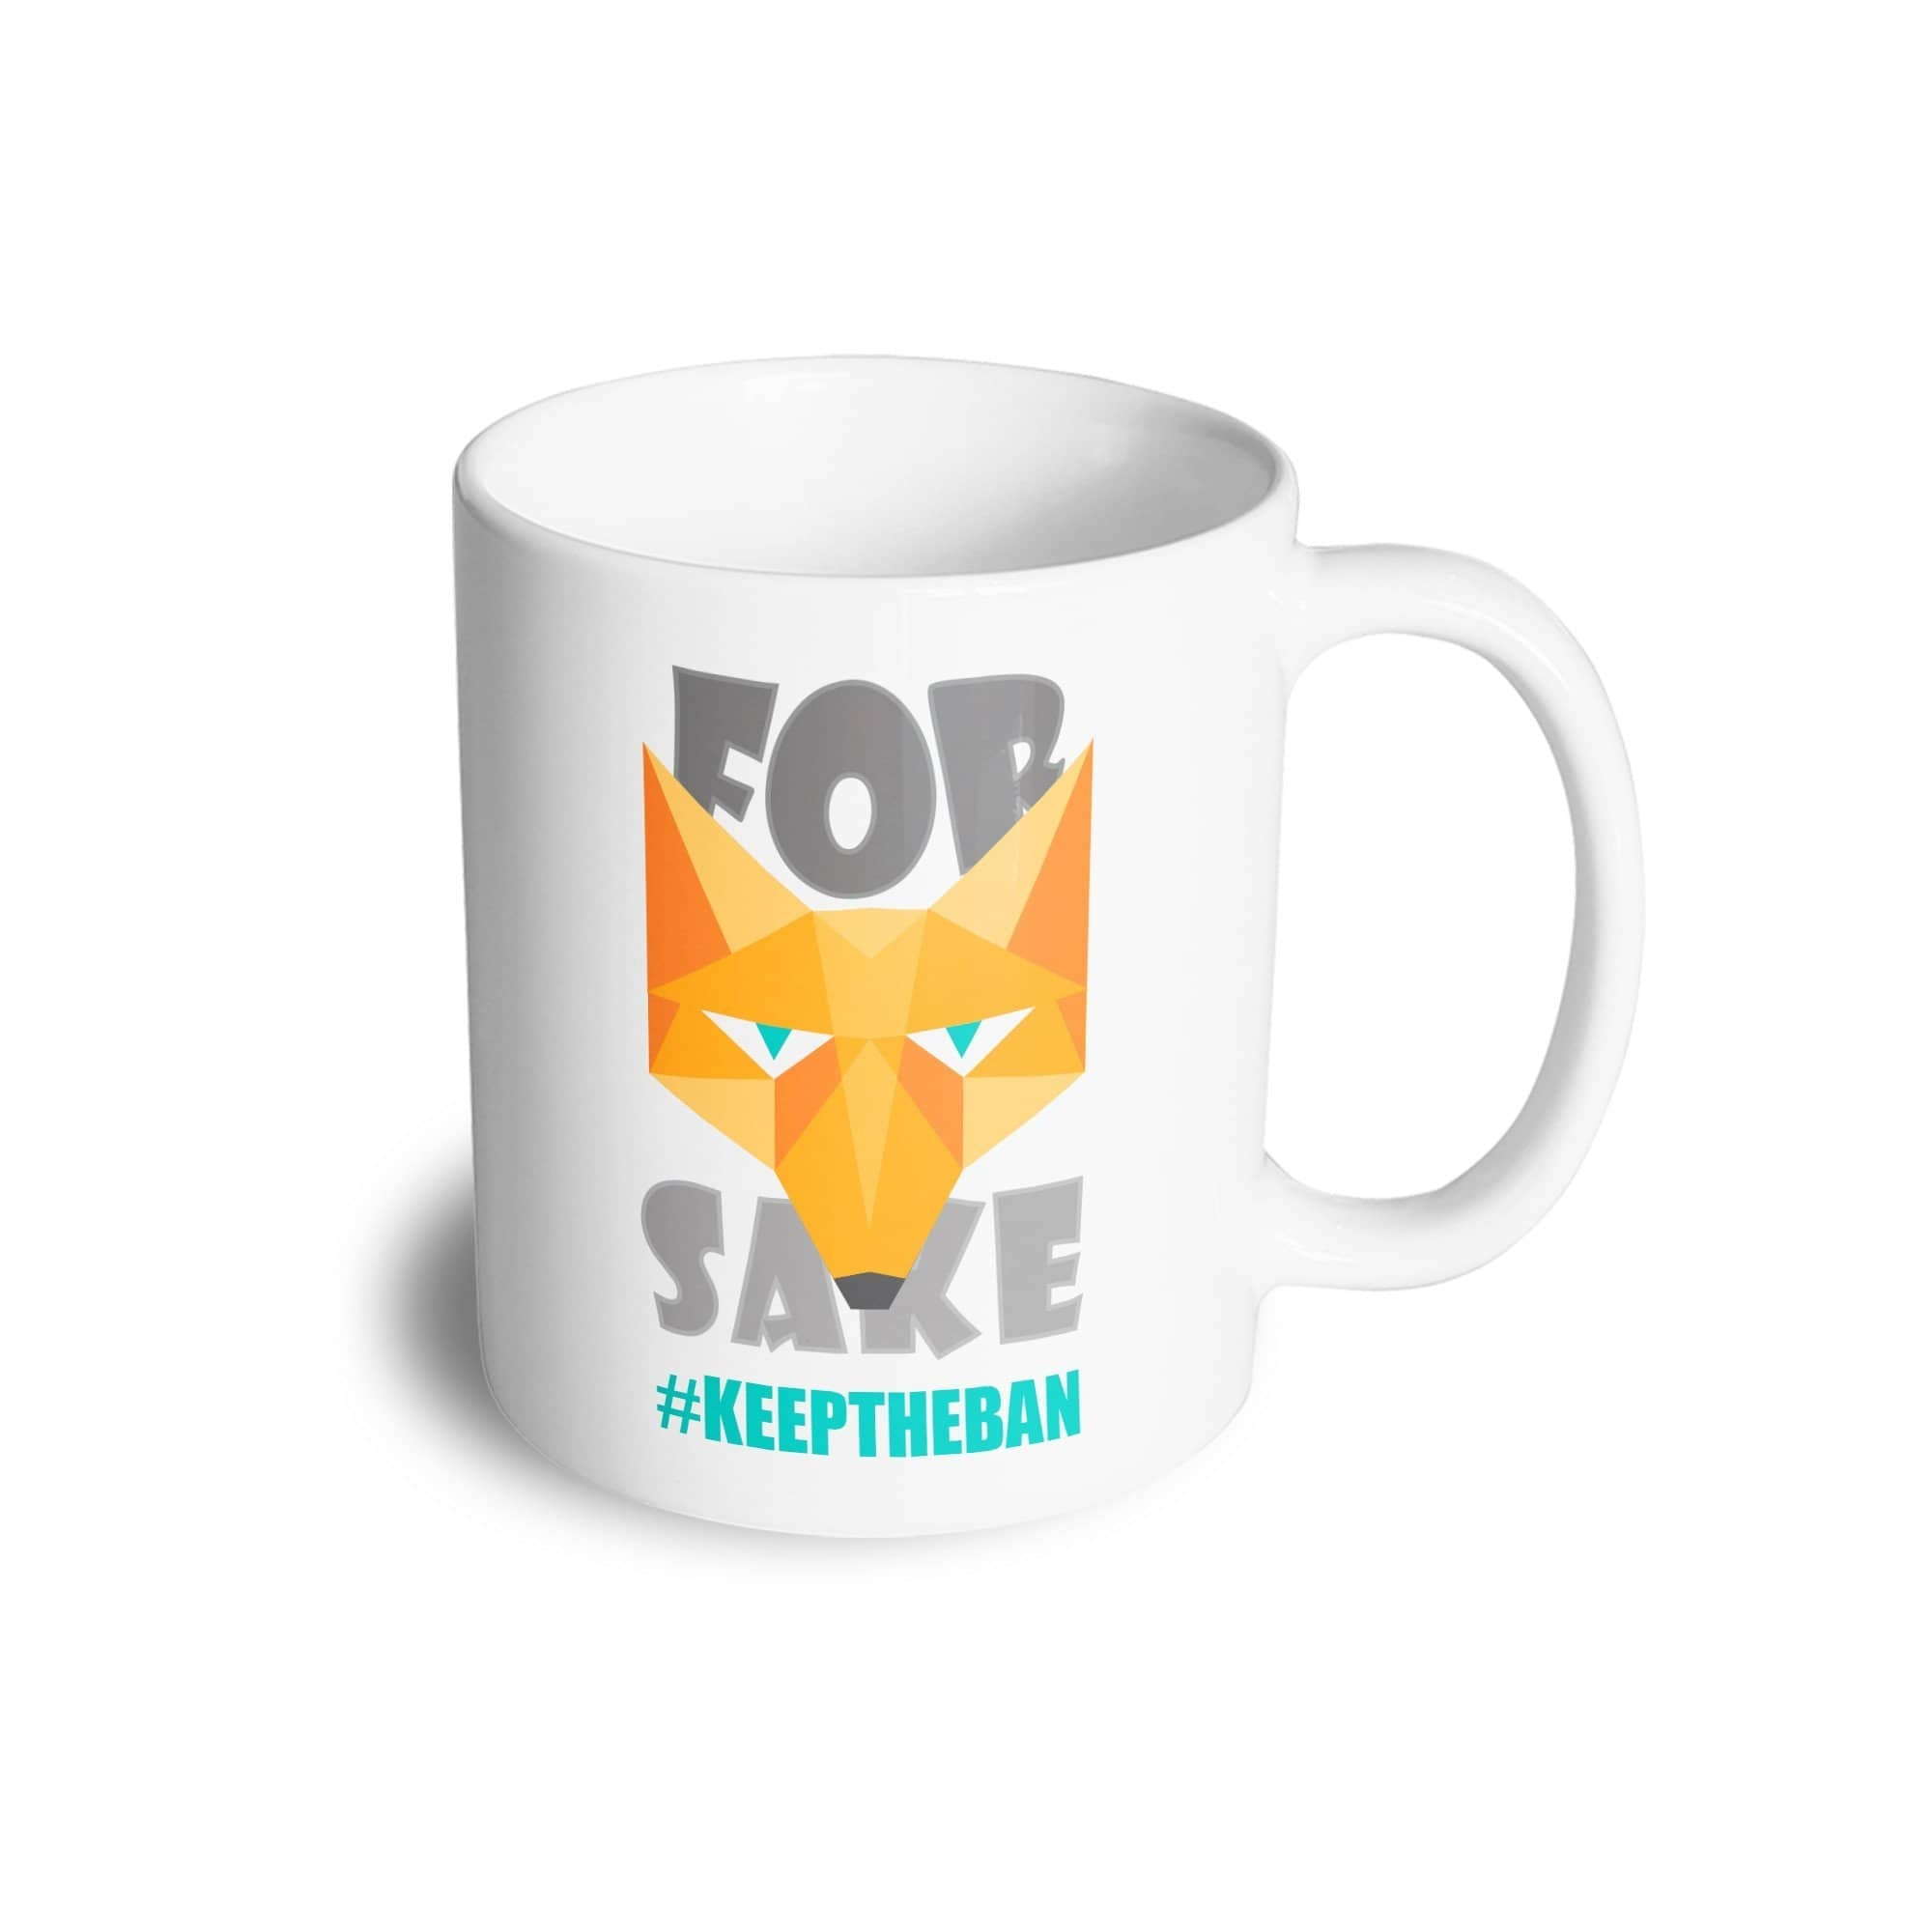 FOR FOX SAKE #KEEPTHEBAN - Mug